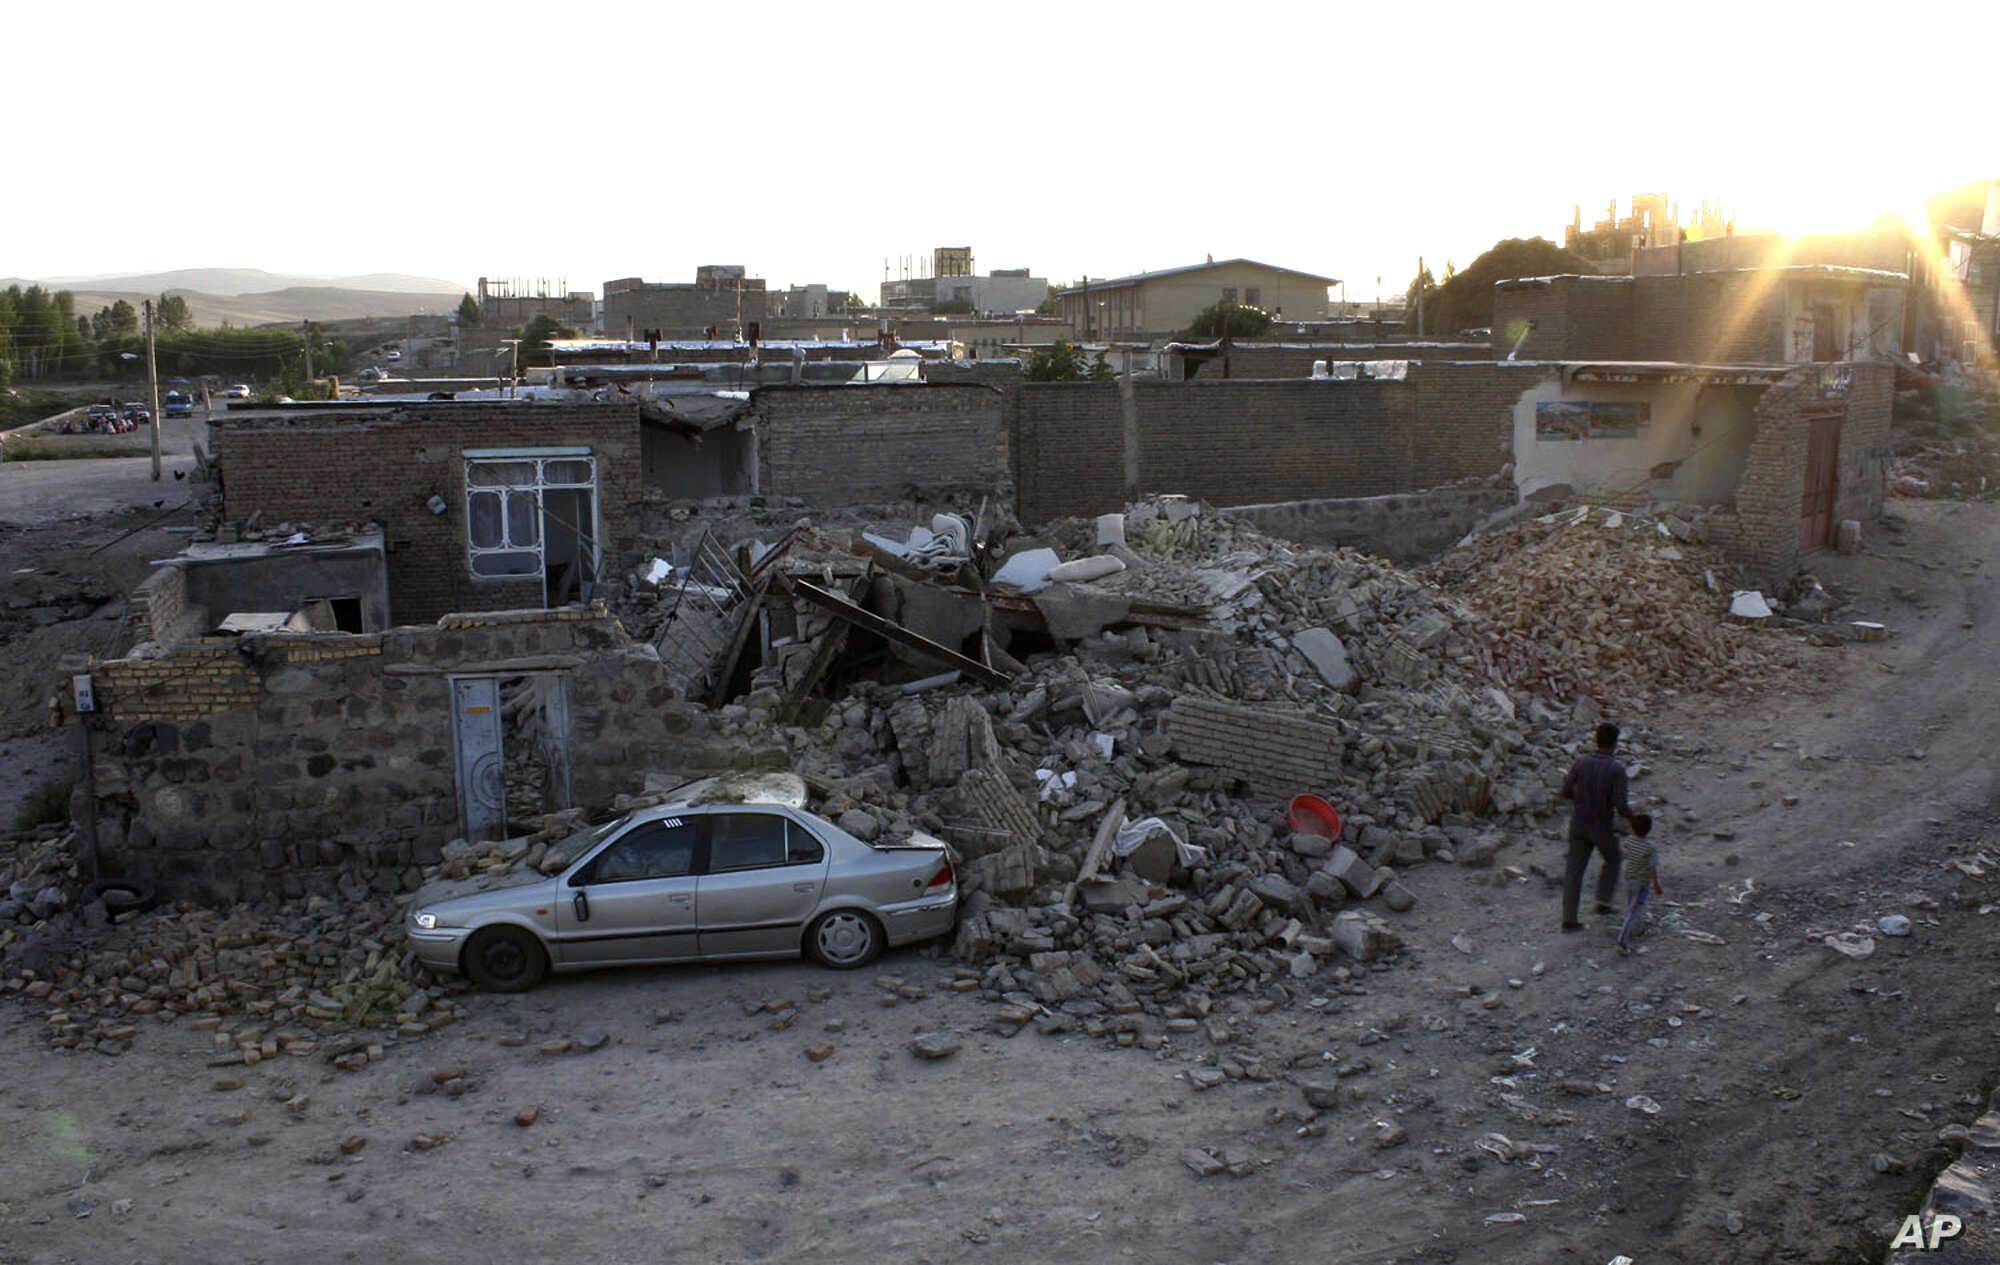 Ruins of a houses are seen after an earthquake in the city of Varzaqan in northwestern Iran, on Saturday, Aug. 11, 2012.